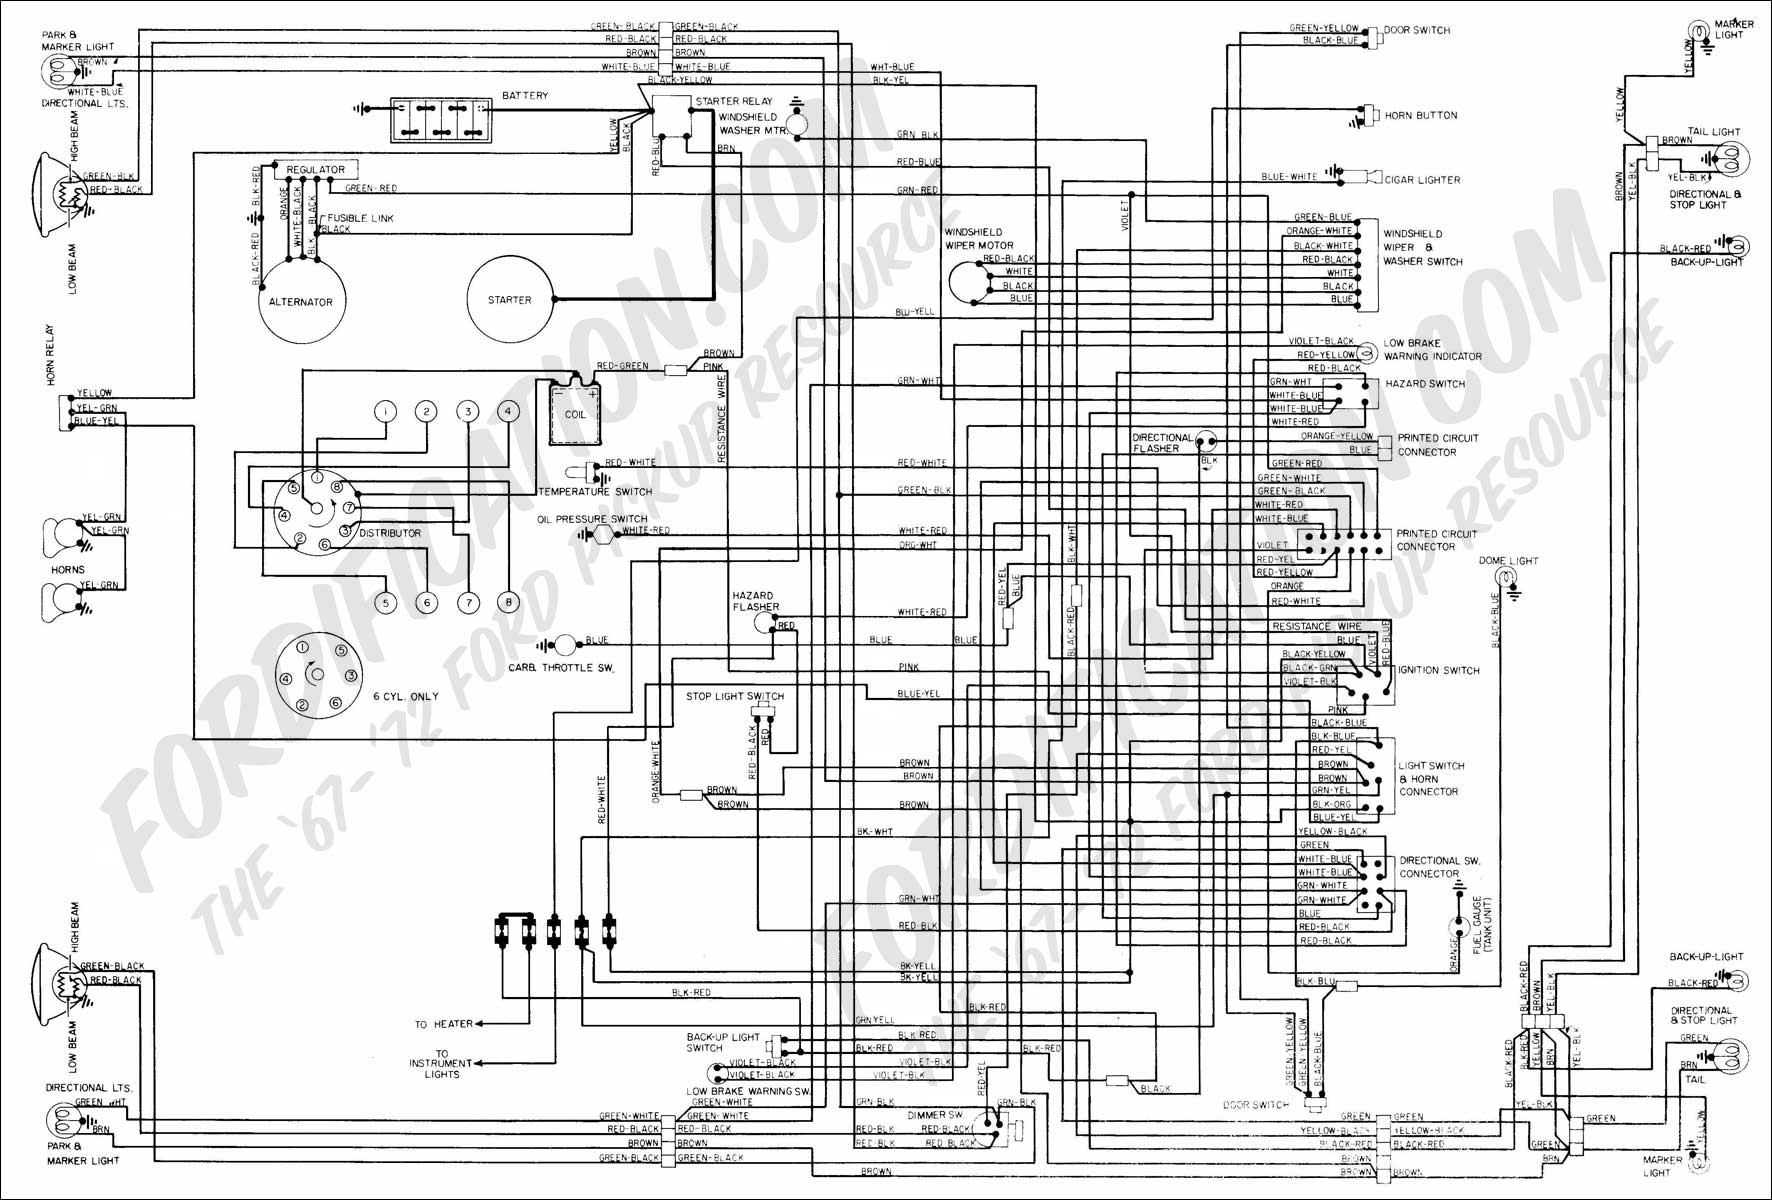 2005 Ford F250 Wiring Diagram Plug Detailed Schematics Wire Harness Plugs 2002 F350 Dodge Ram 3500